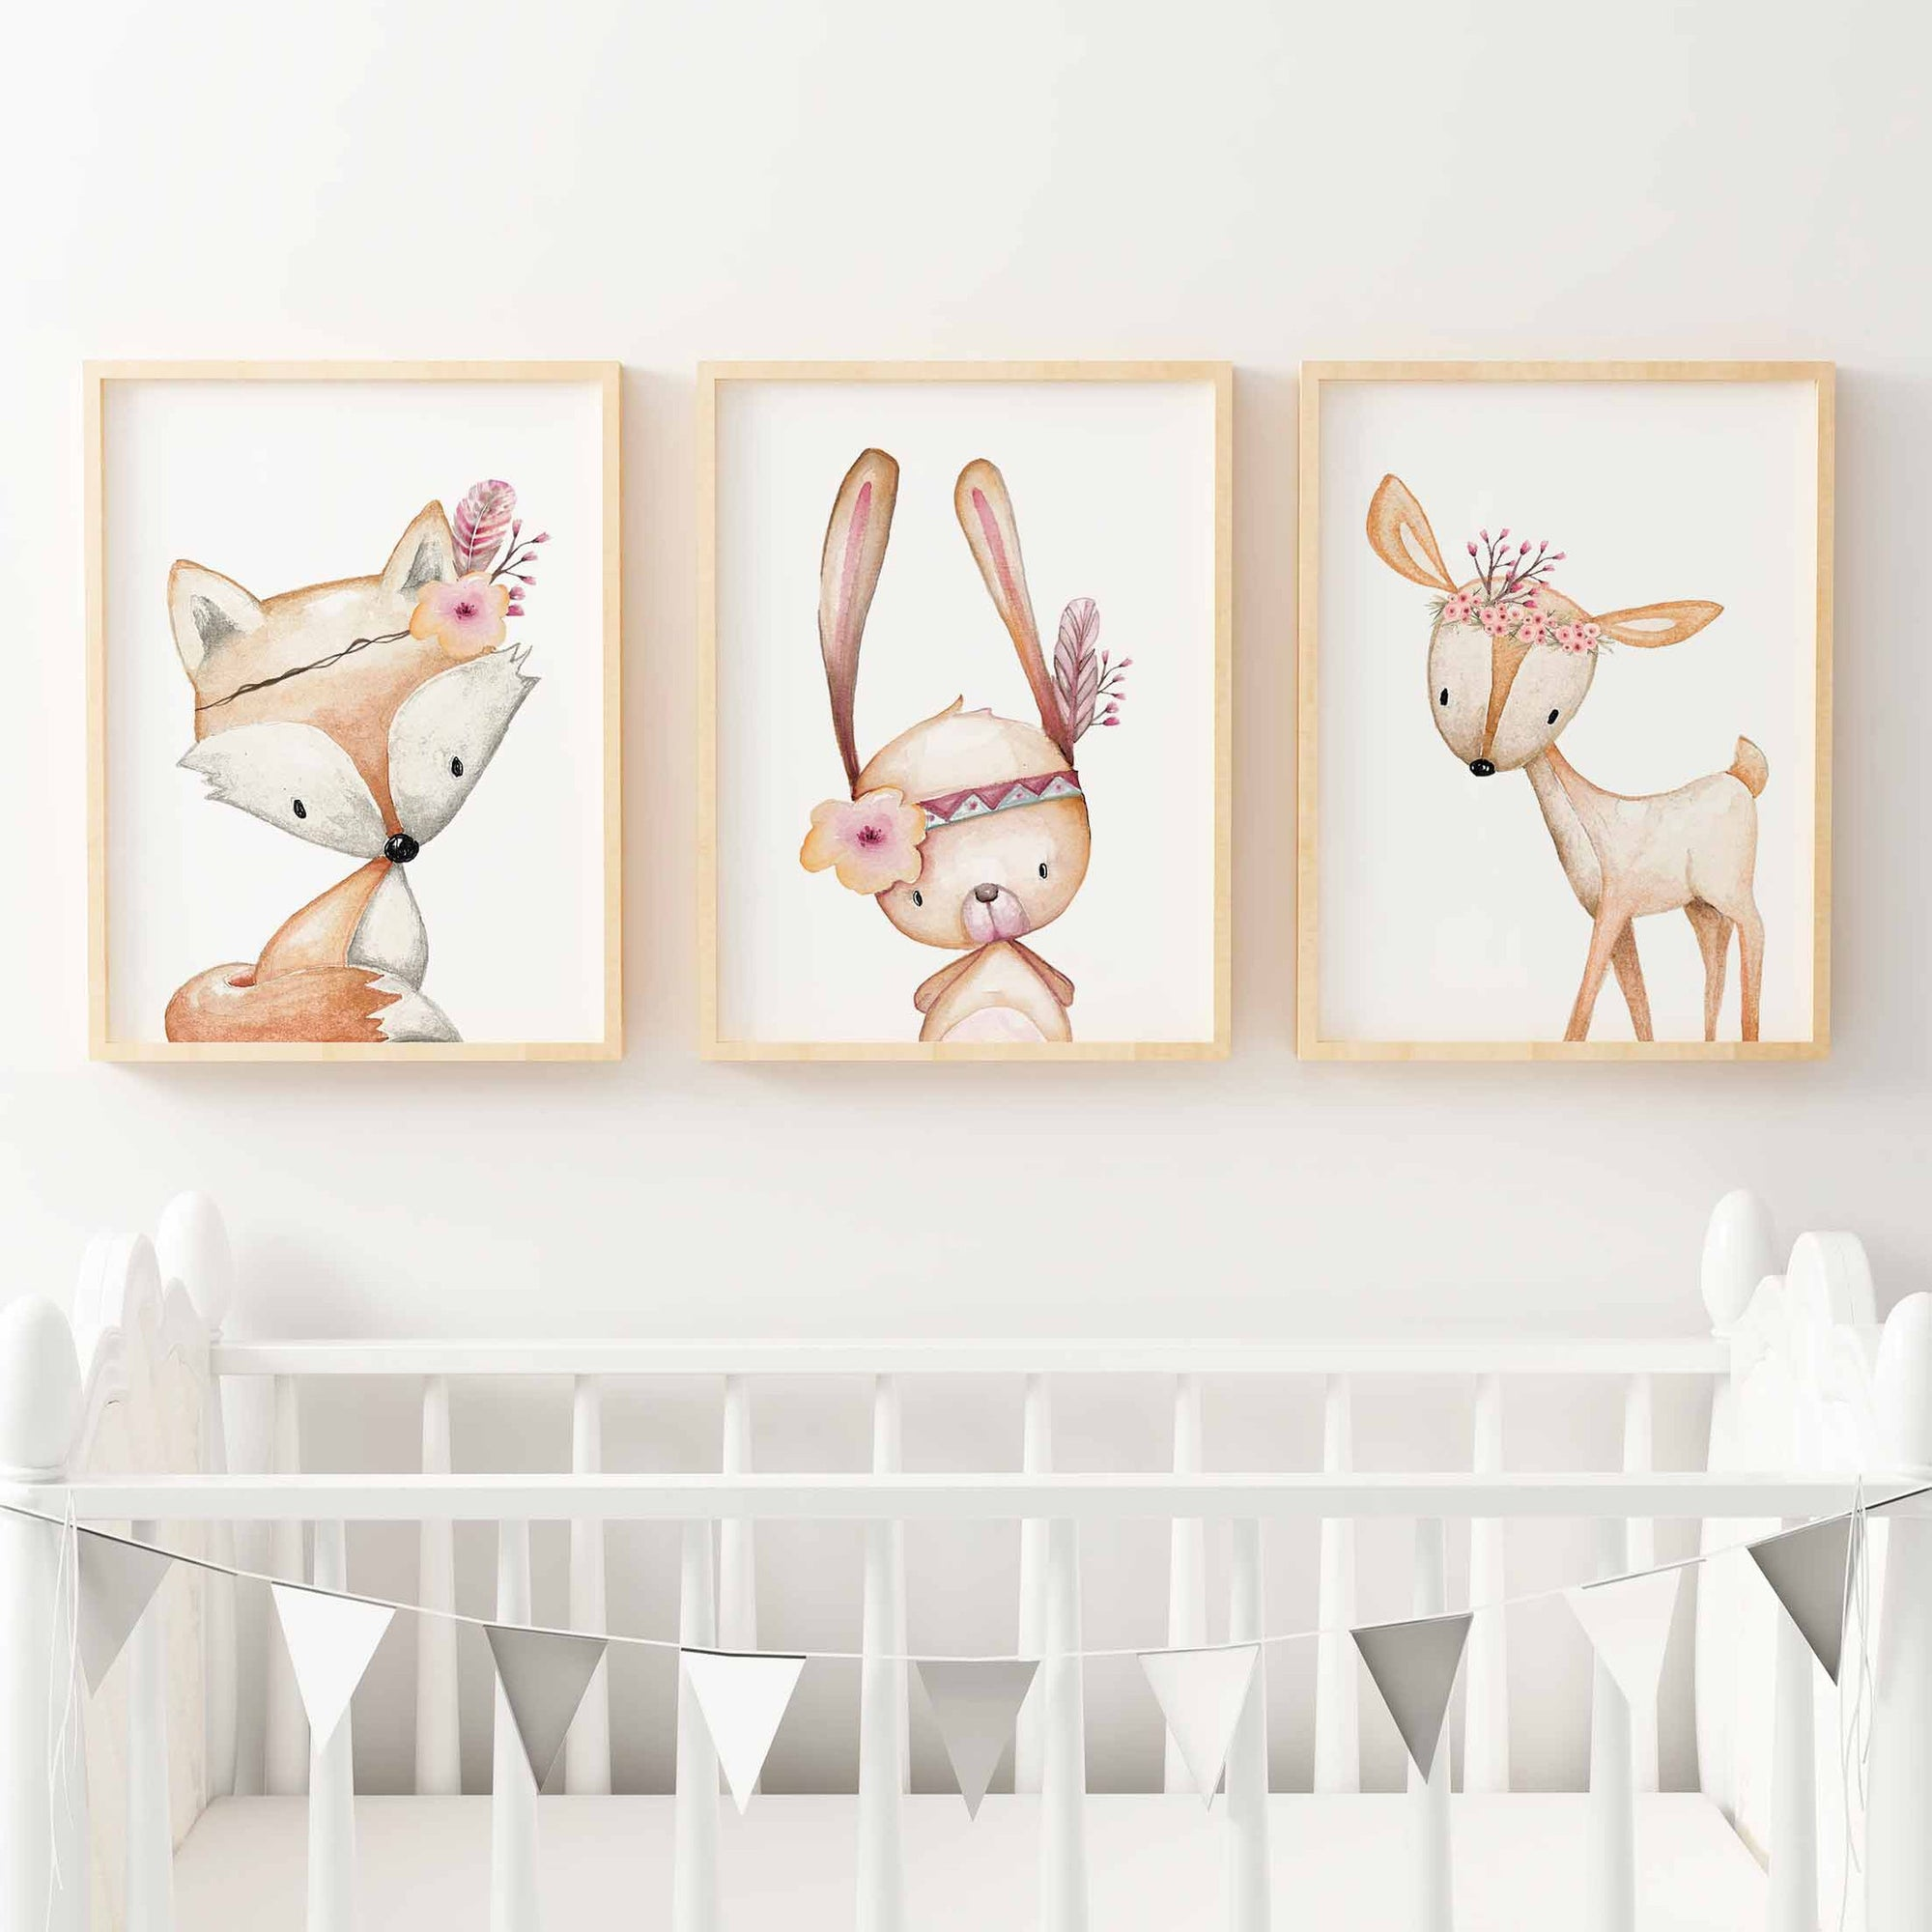 Baby, Girls Floral Woodland Nursery or Bedroom Wall Art Decor Print Set- Bunny, Fox & Deer